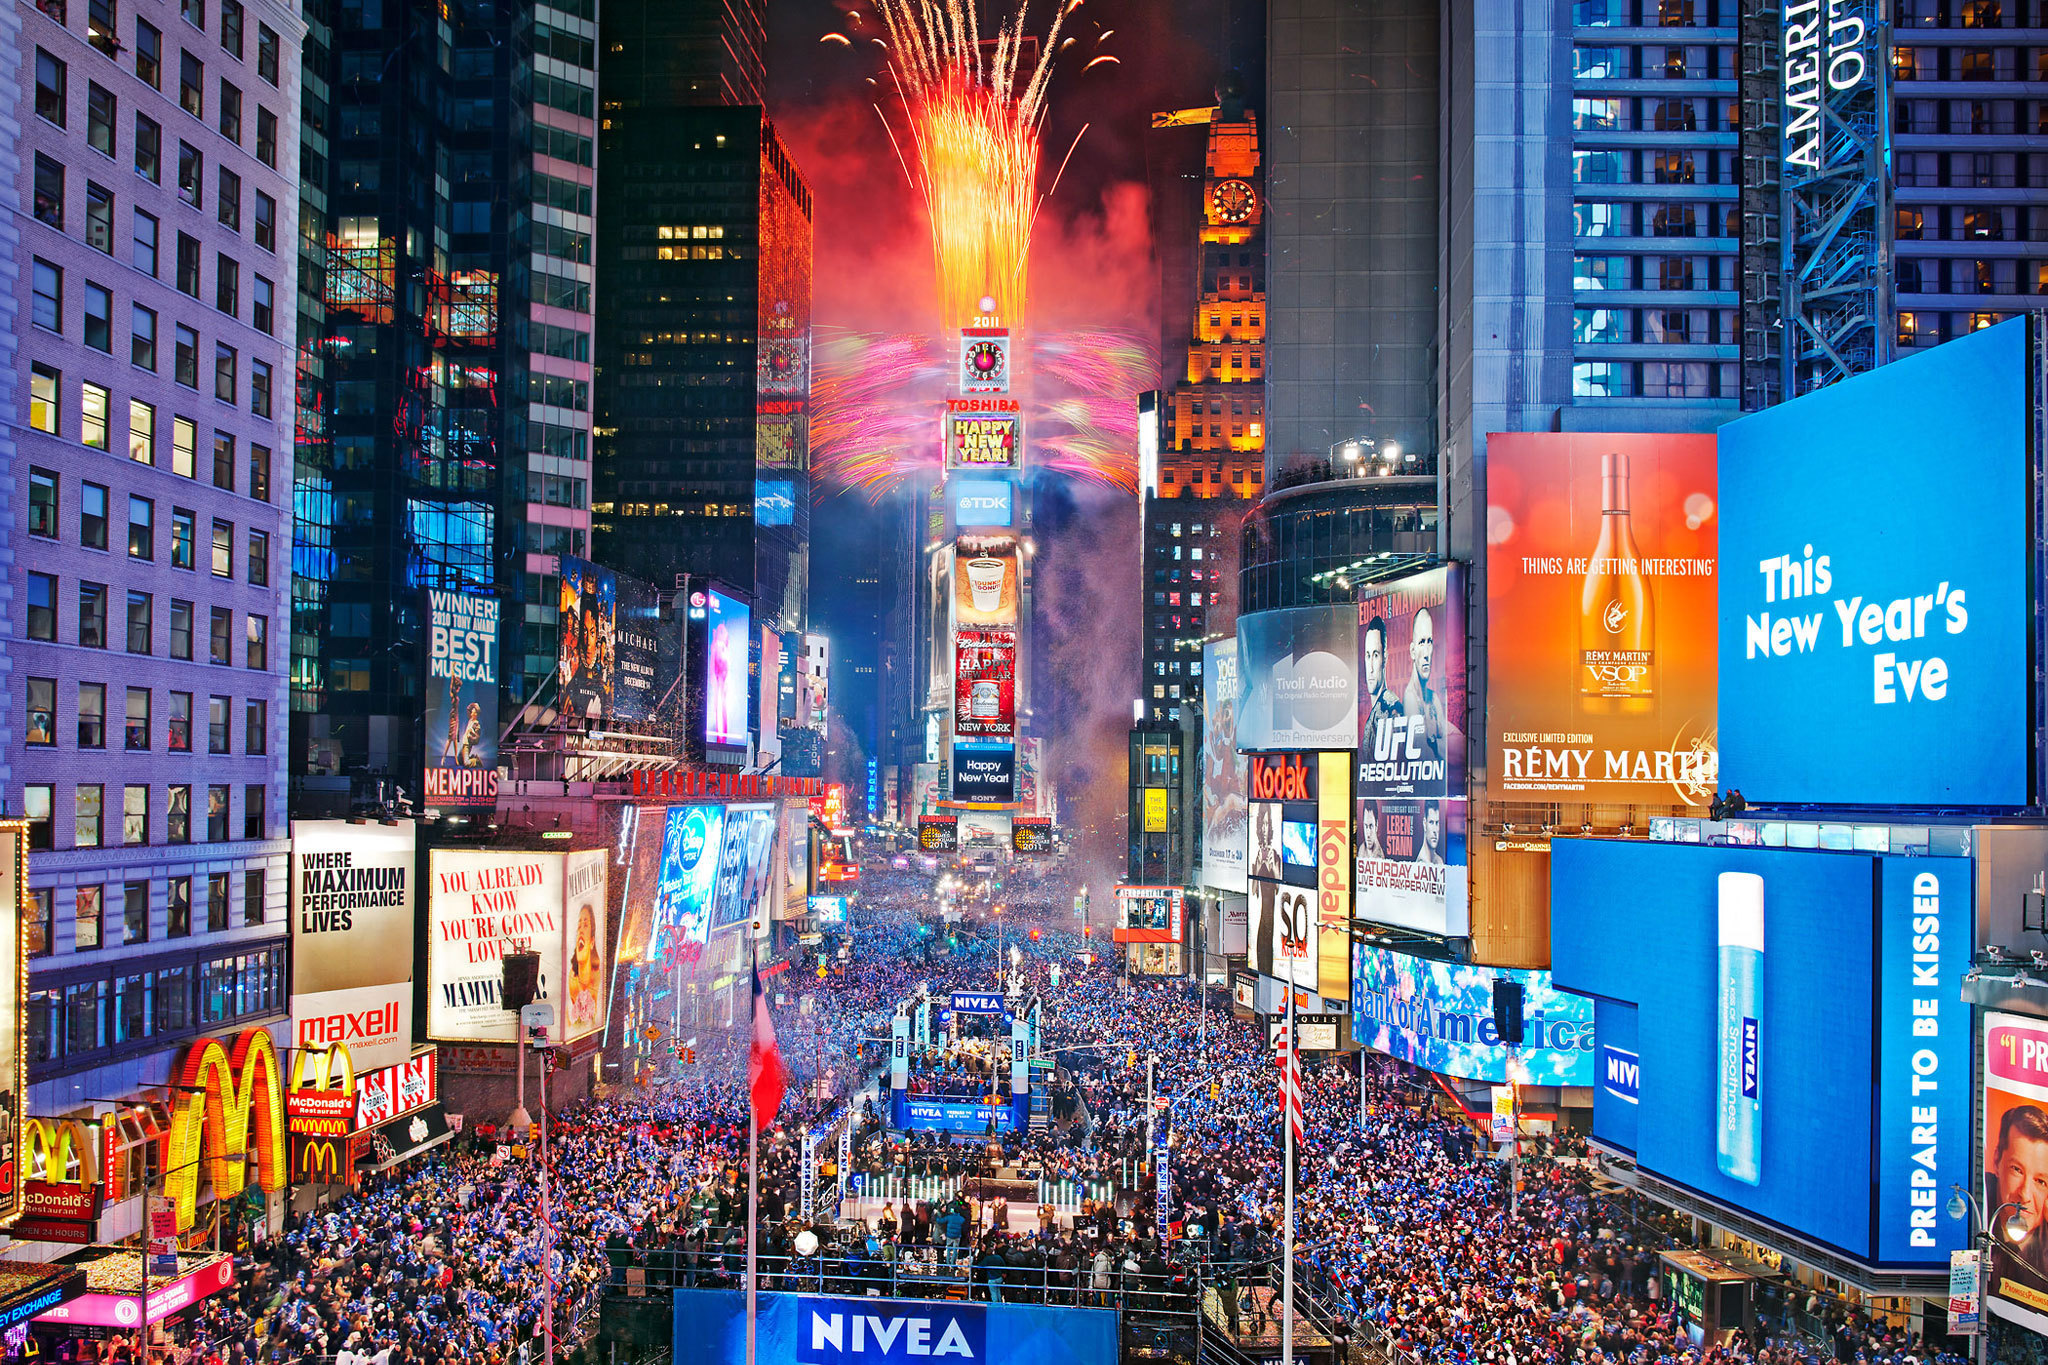 times square new year s eve guide to ring in 2019